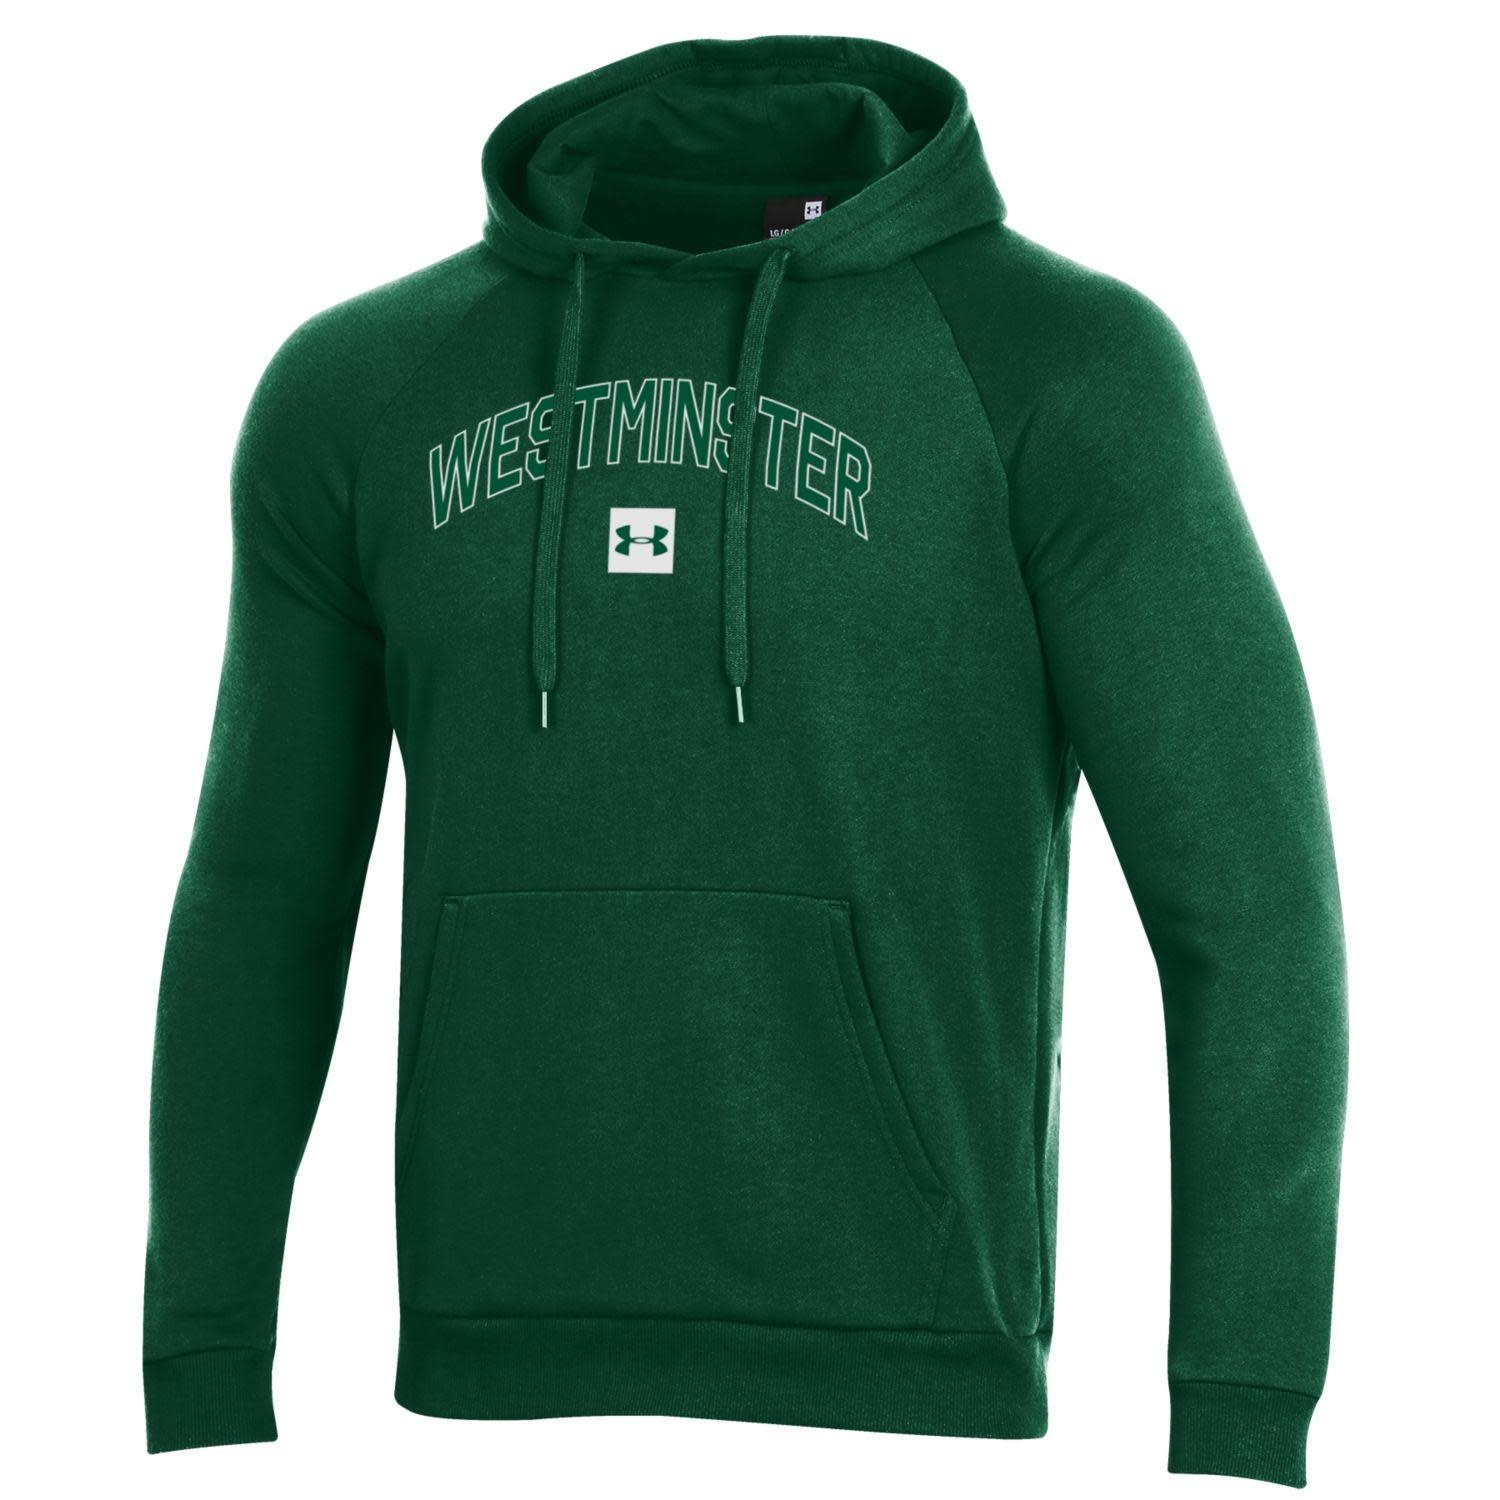 Under Armour Sweatshirt: UA Hoody - Westminster w/UA Symbol